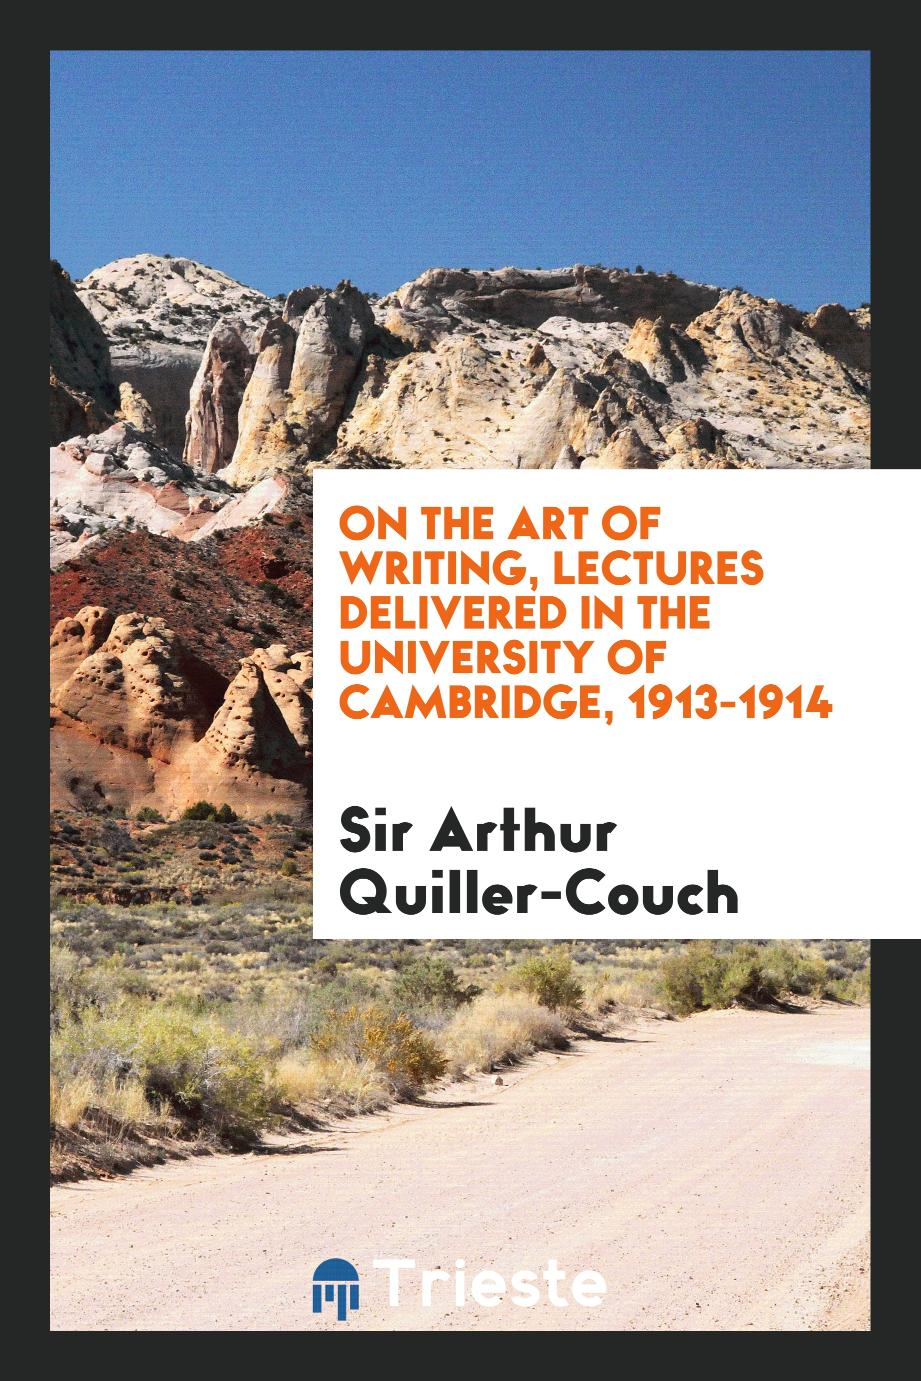 On the Art of Writing, Lectures Delivered in the University of Cambridge, 1913-1914